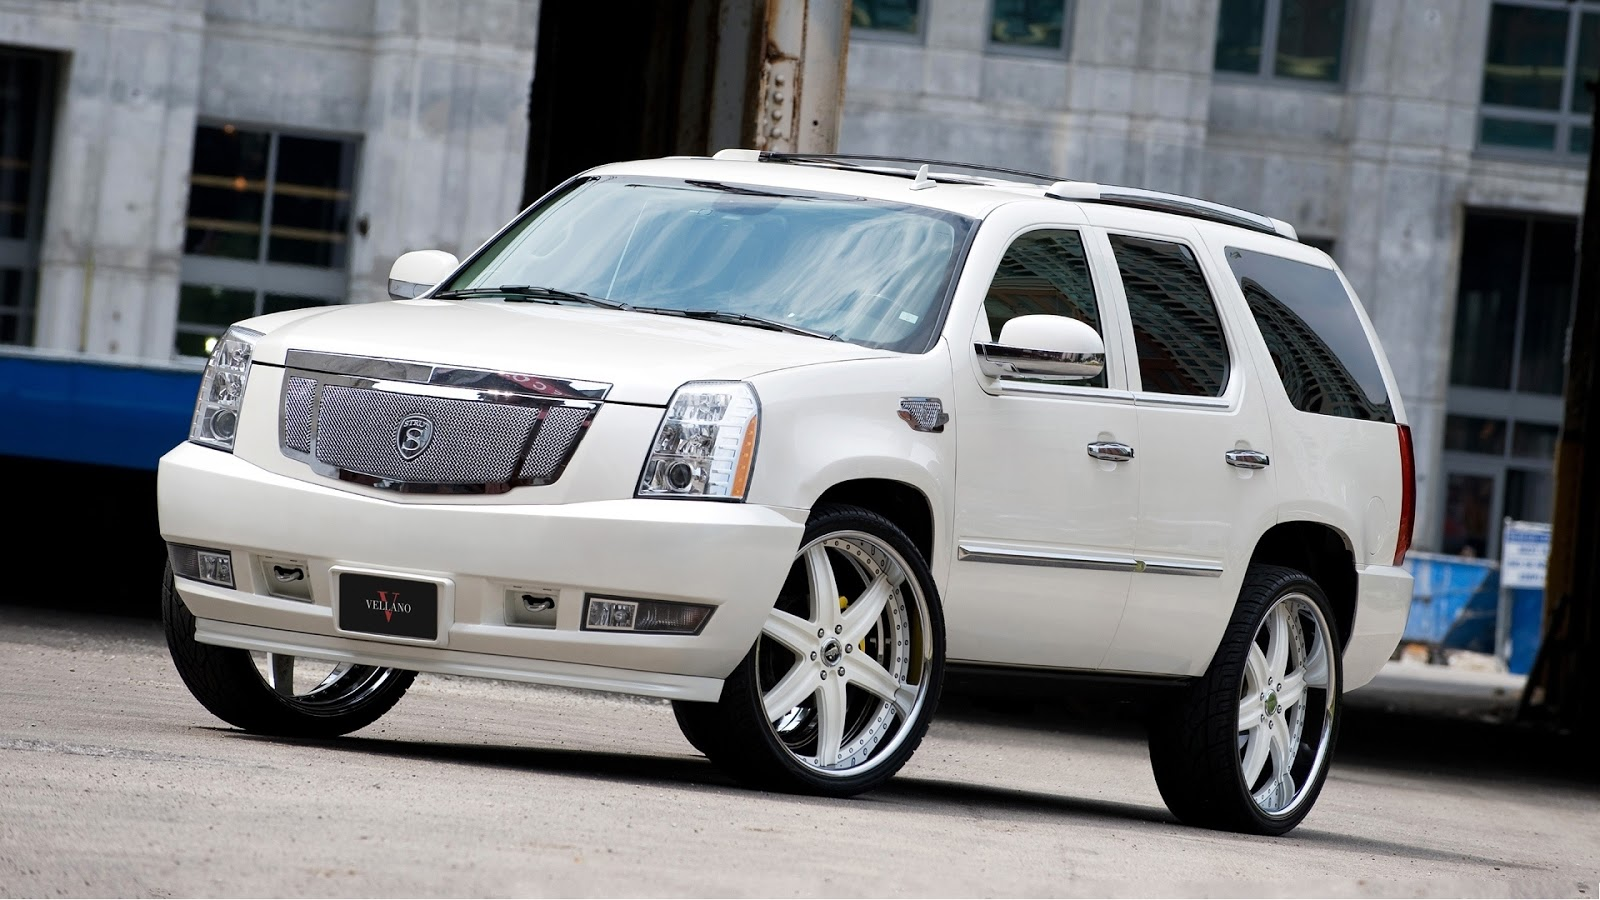 cadillac escalade 2013 cars model review and picture cars wallpapers hd. Black Bedroom Furniture Sets. Home Design Ideas